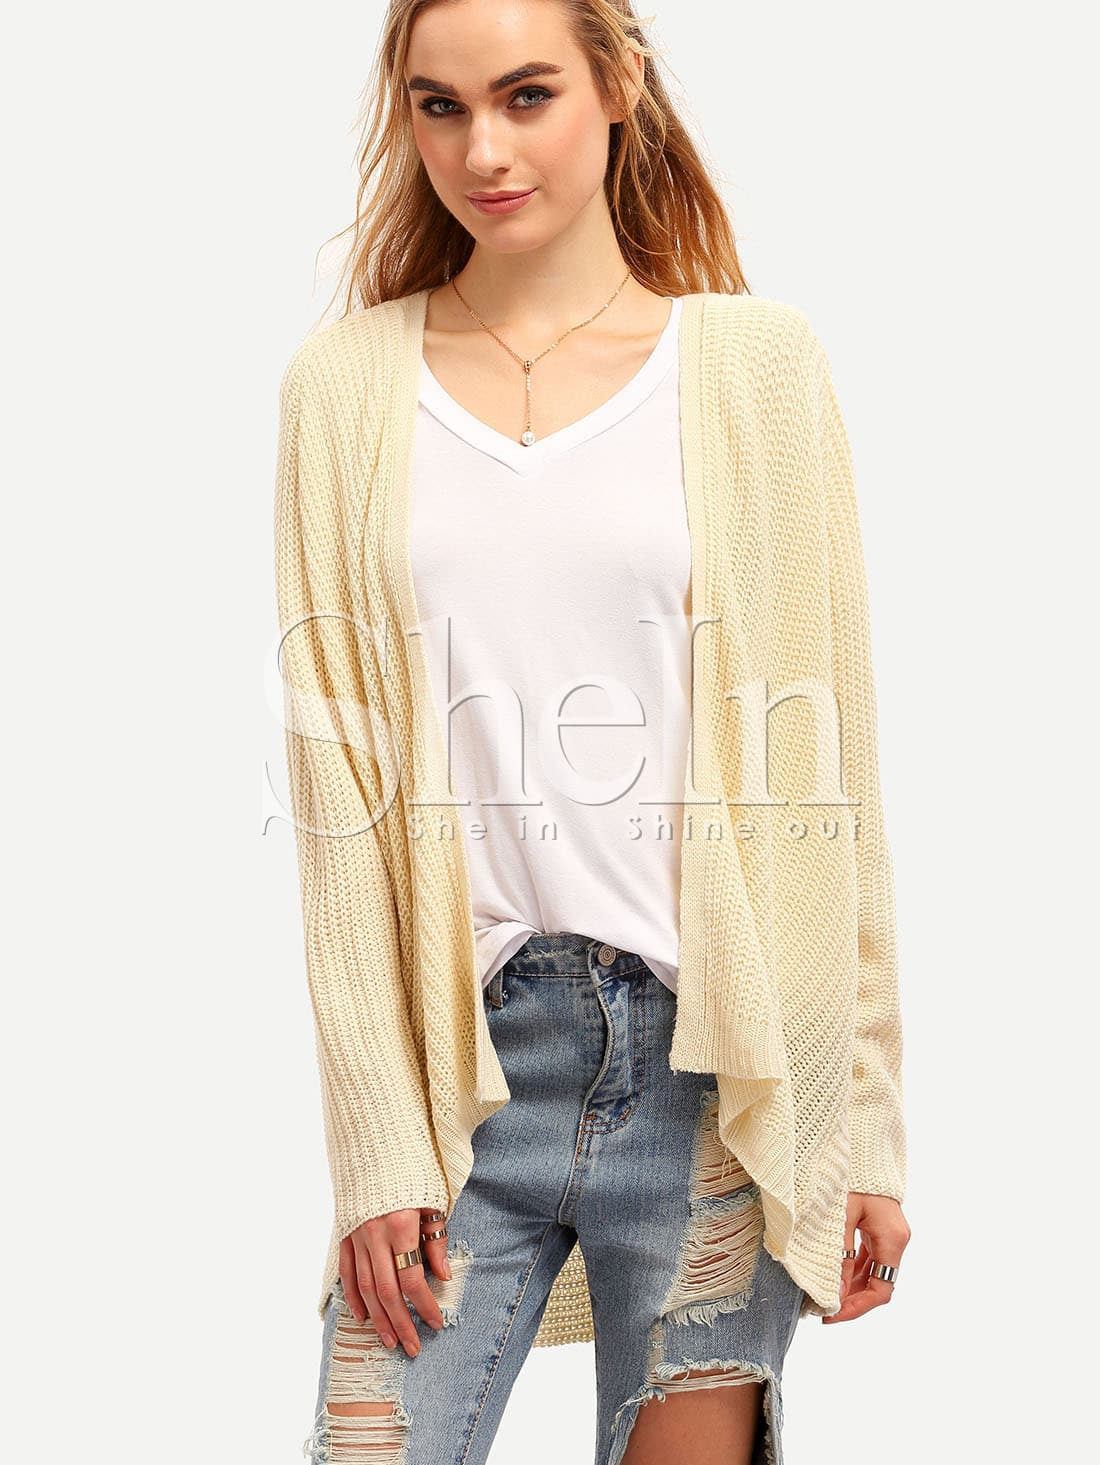 Beige Long Sleeve Shawl Collar CardiganBeige Long Sleeve Shawl Collar Cardigan<br><br>color: Pink<br>size: one-size